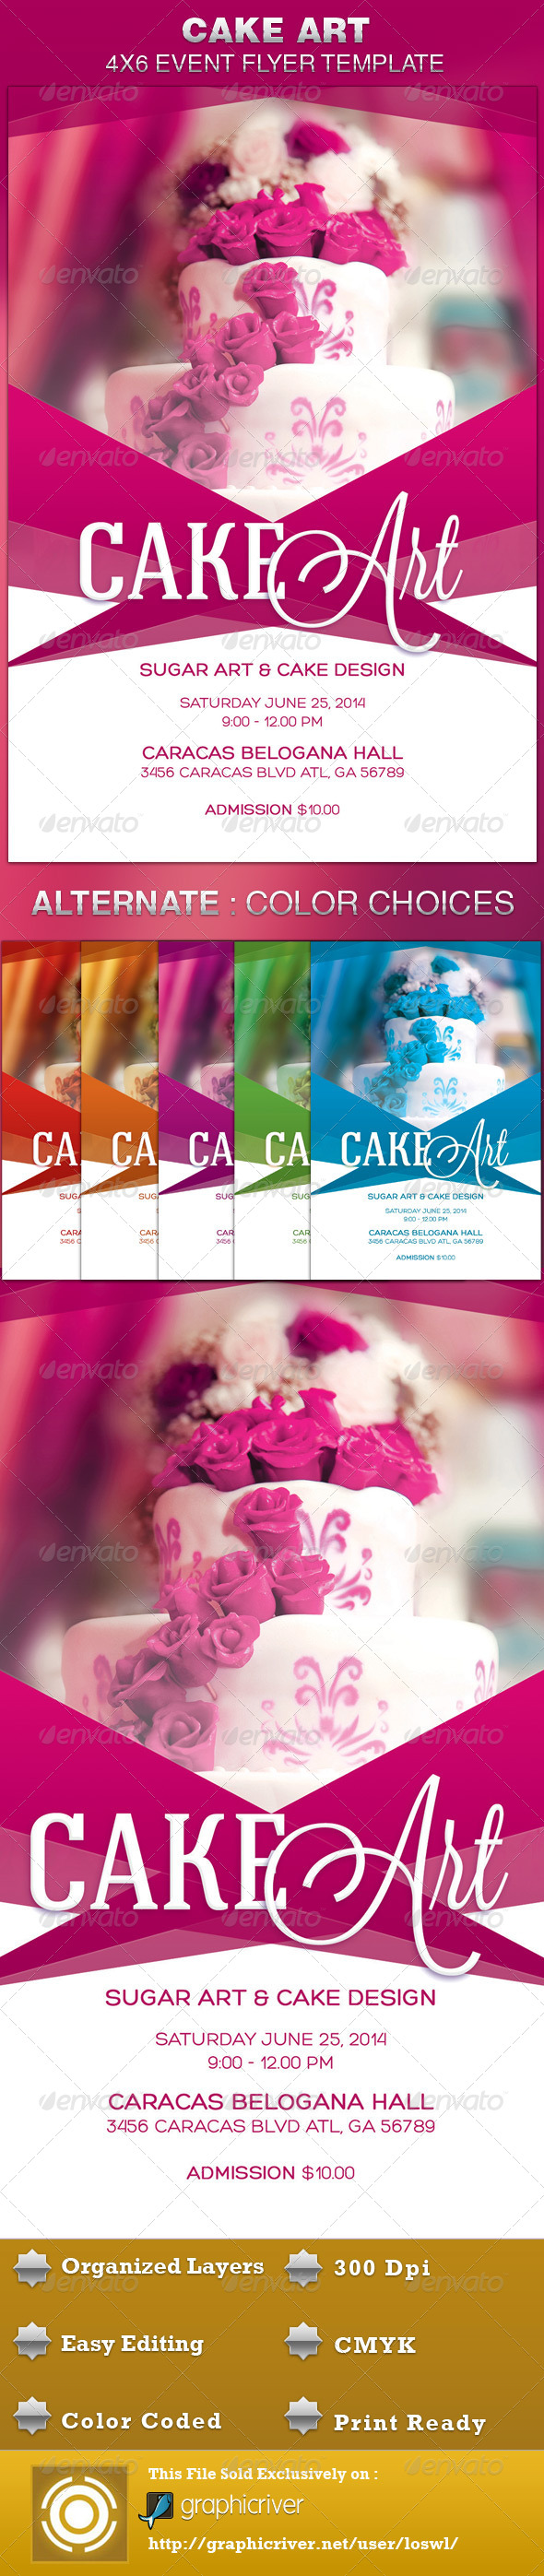 Cake Art Event Flyer Template - Events Flyers